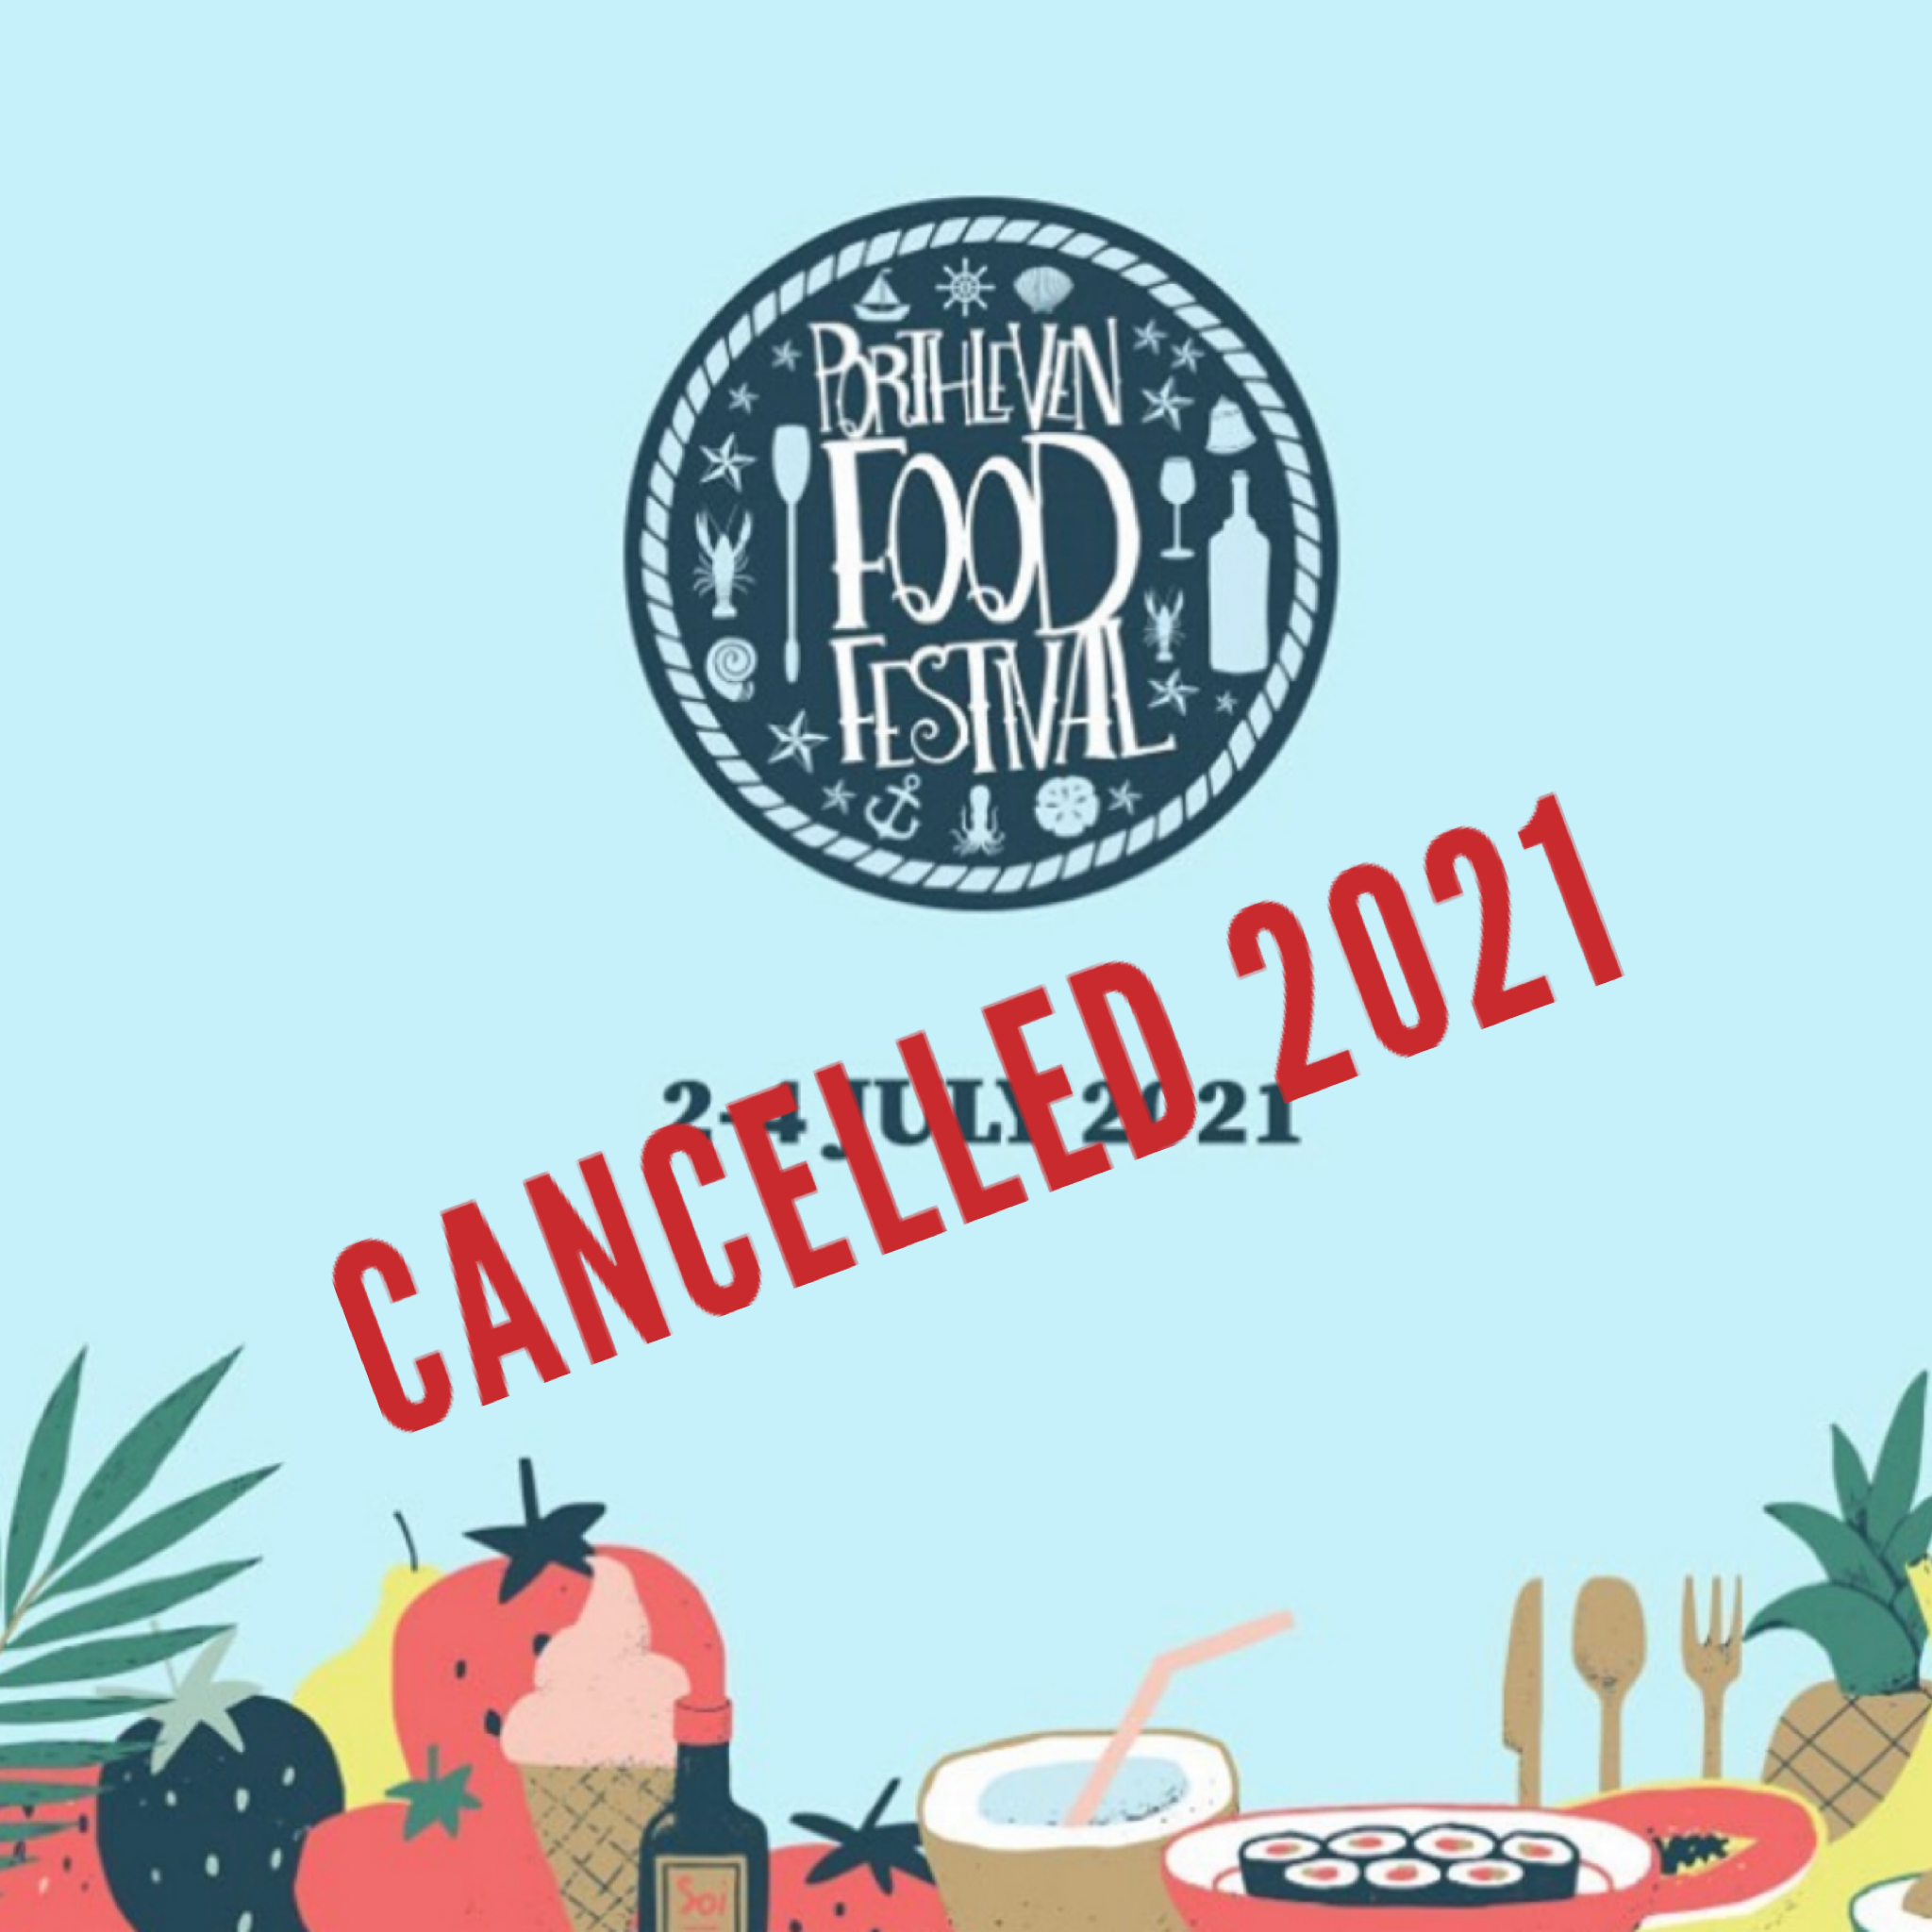 Porthleven Food Festival cancelled again for 2021